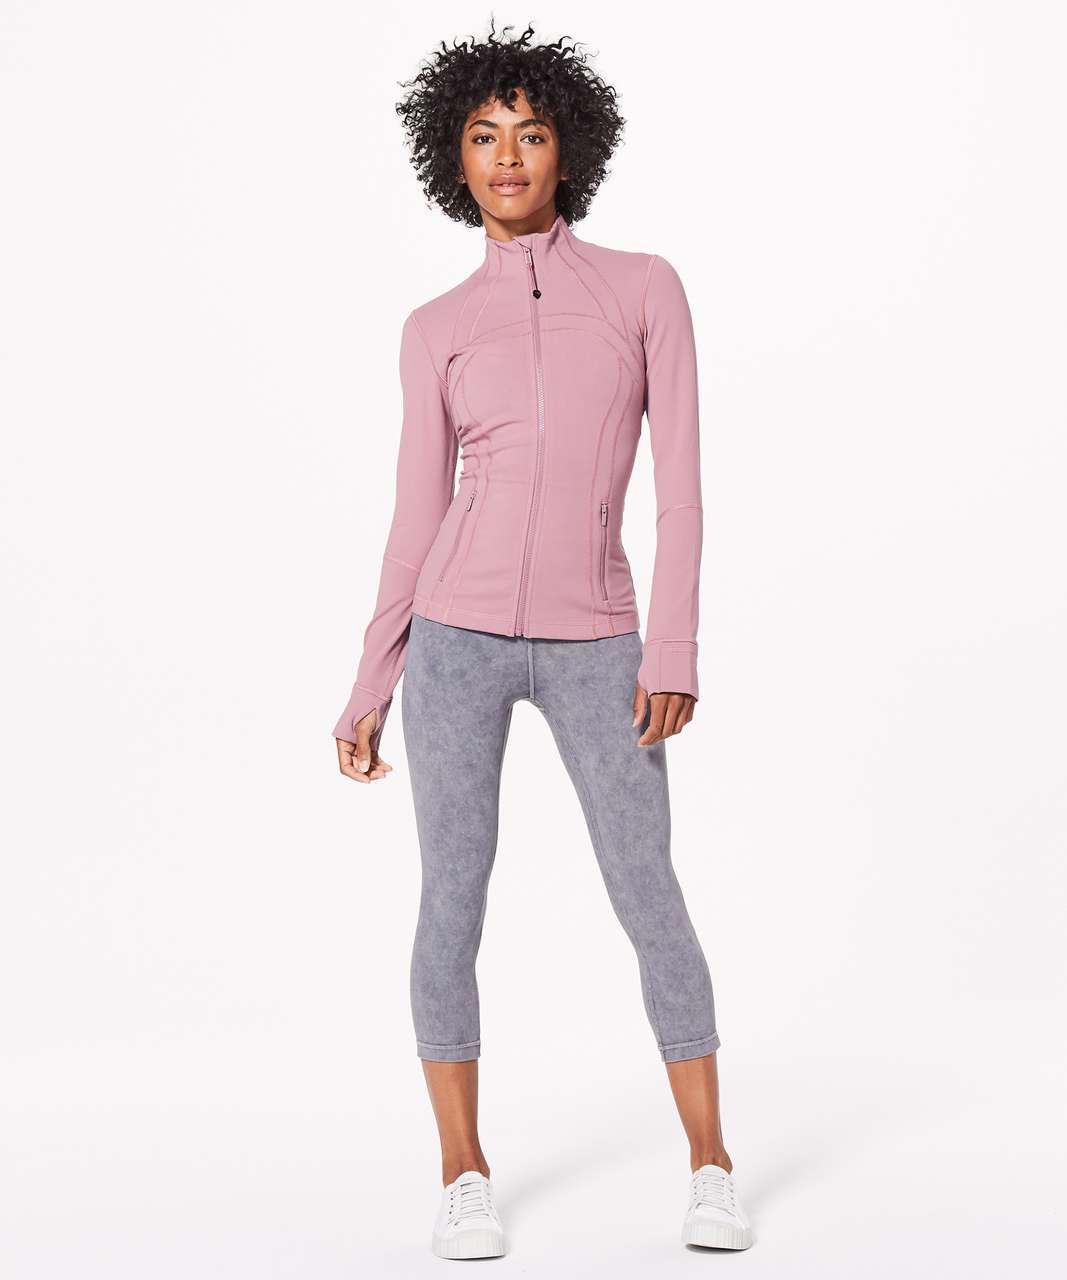 Lululemon Define Jacket - Figue